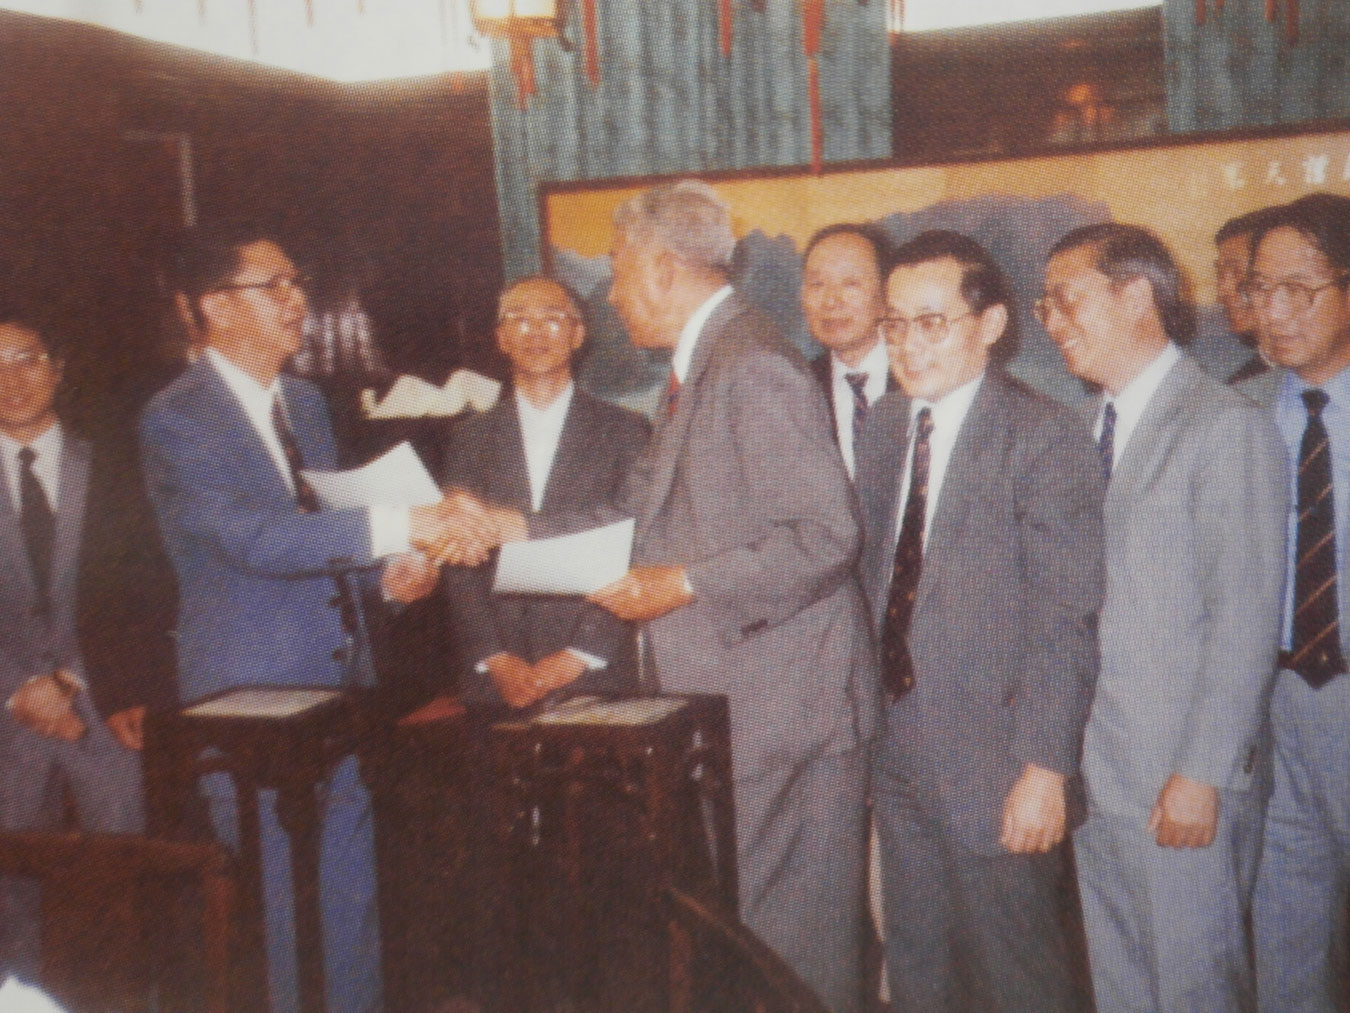 CUHK and the University of Peking on exchange programmes (1984)